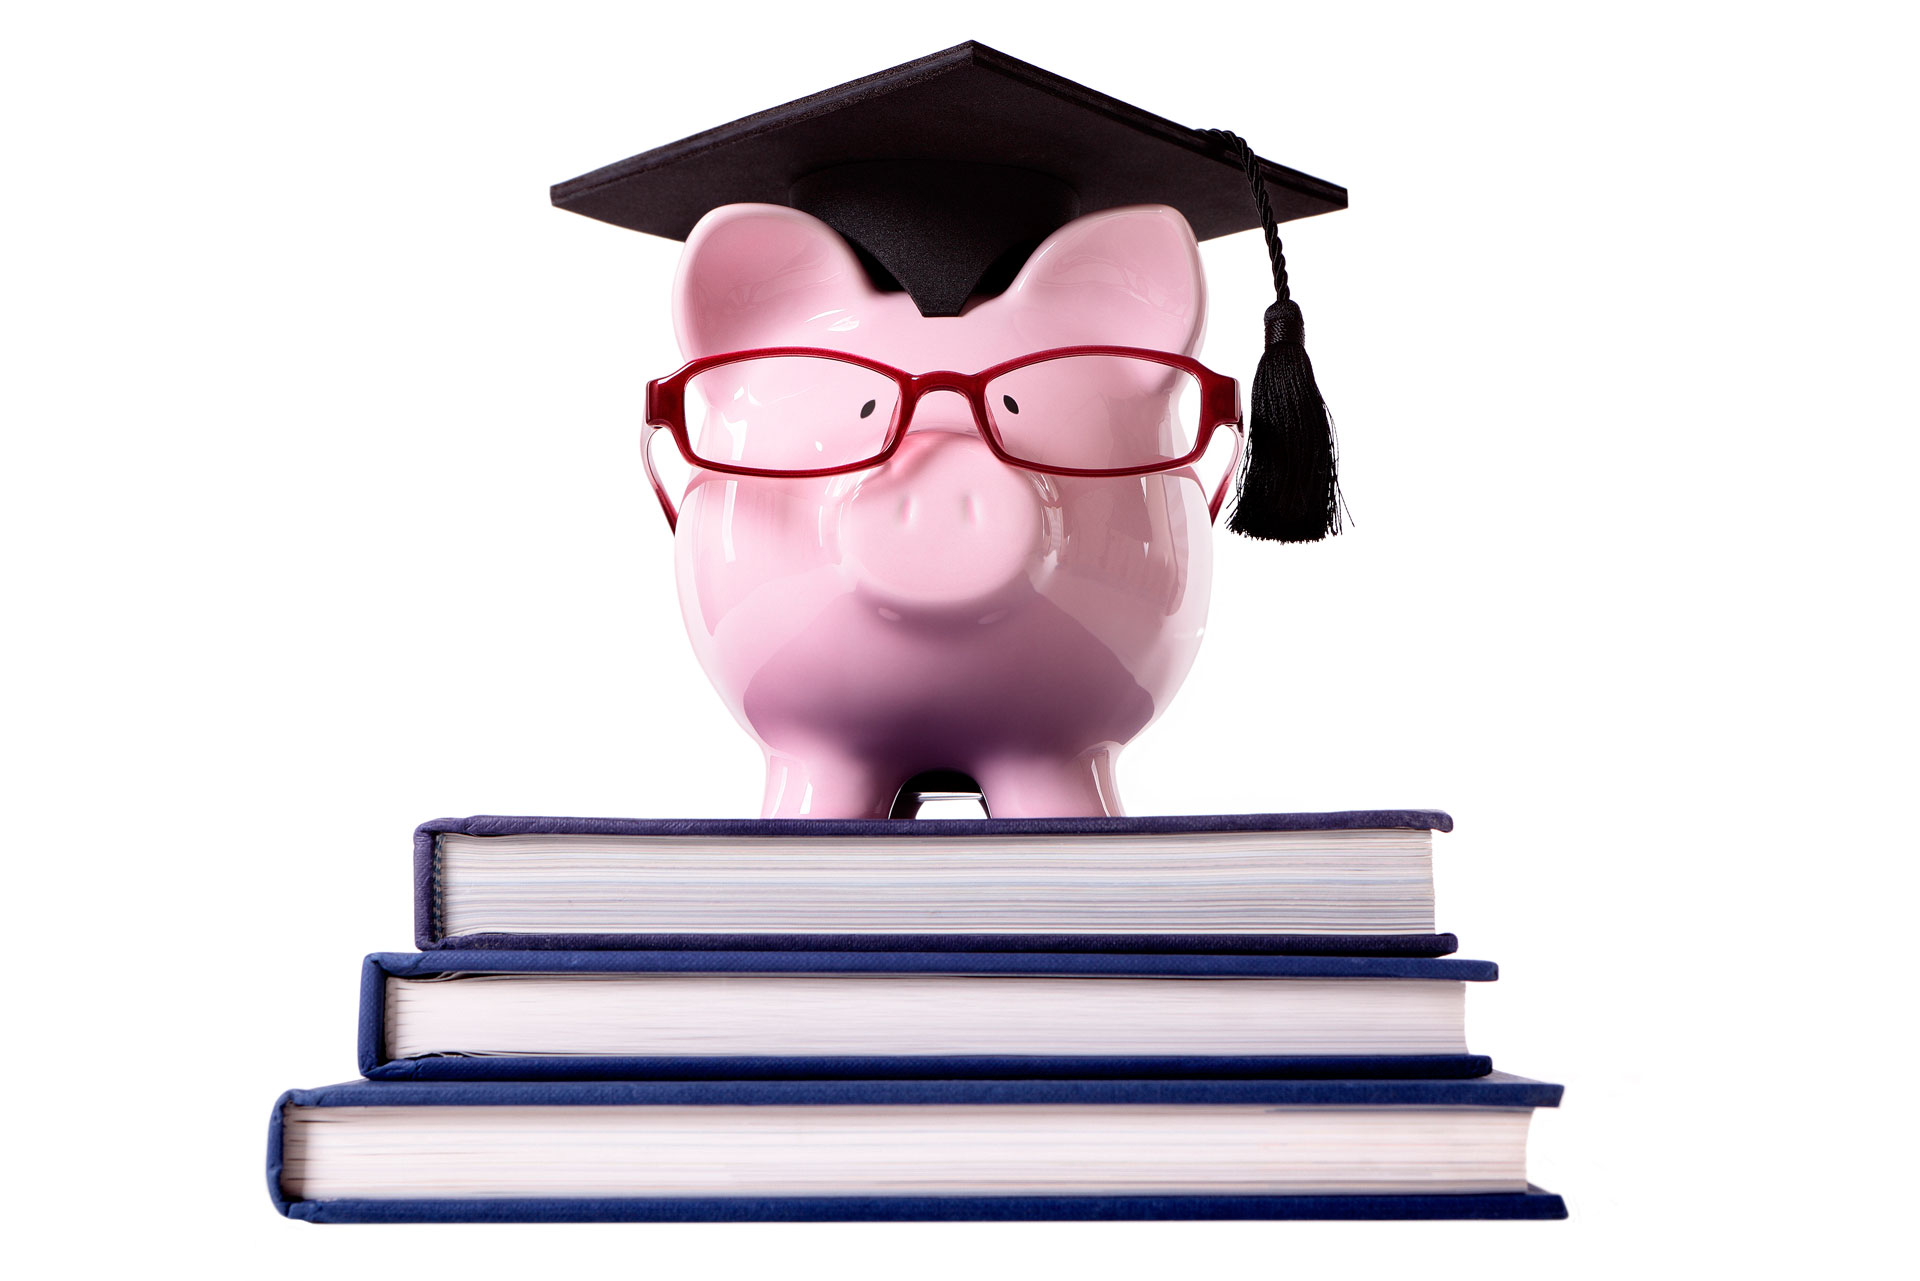 Piggy bank stands on top of three books